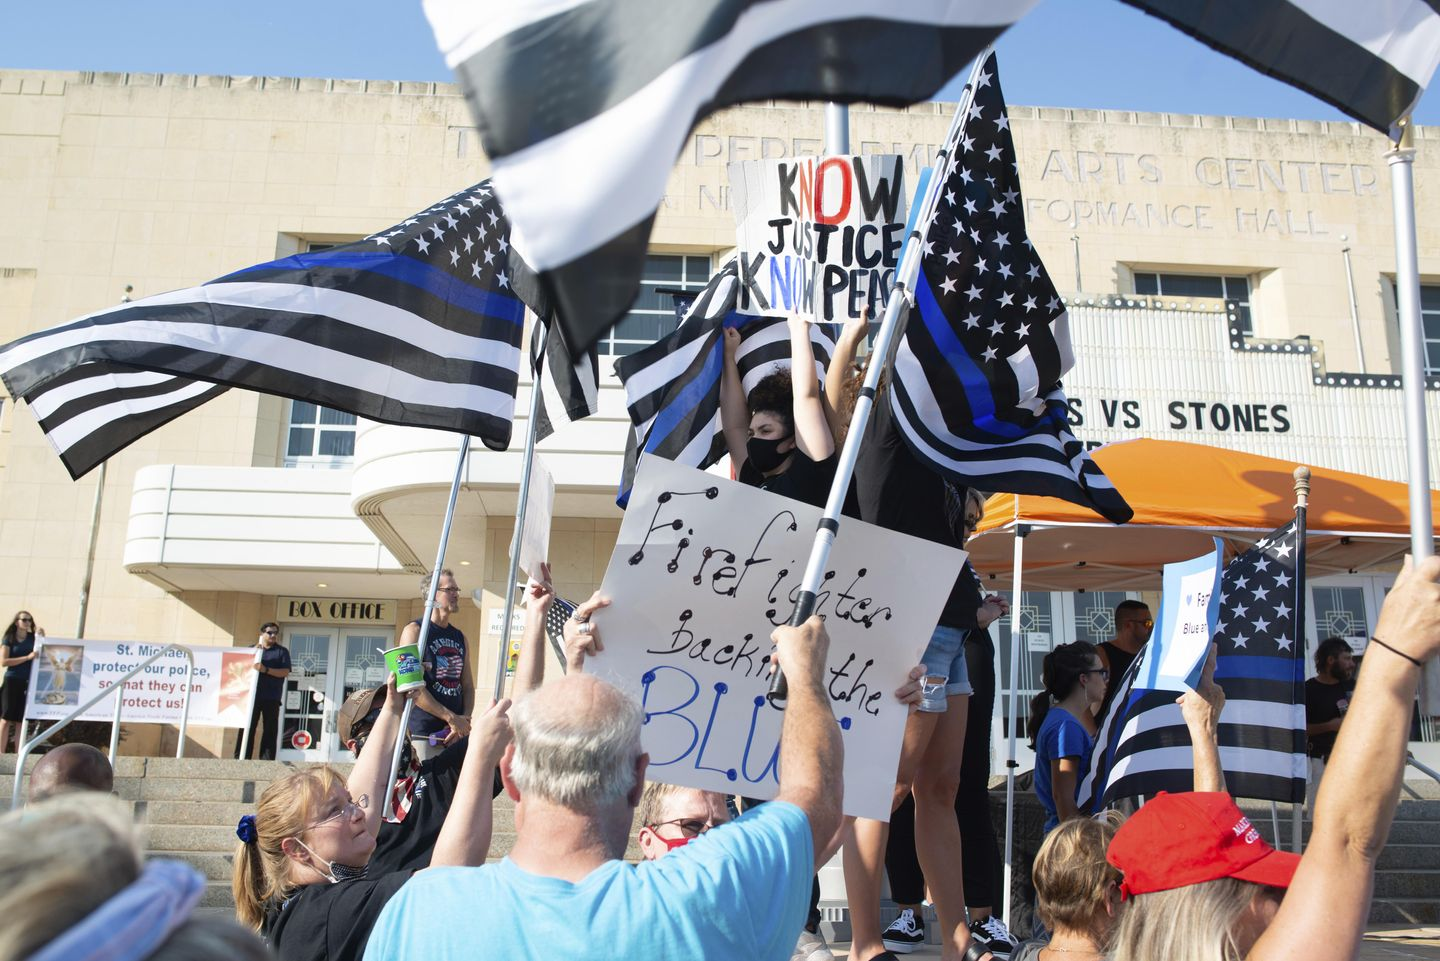 Lauren Gibson, Utah woman, charged with hate crime for stomping on 'Back the Blue' sign